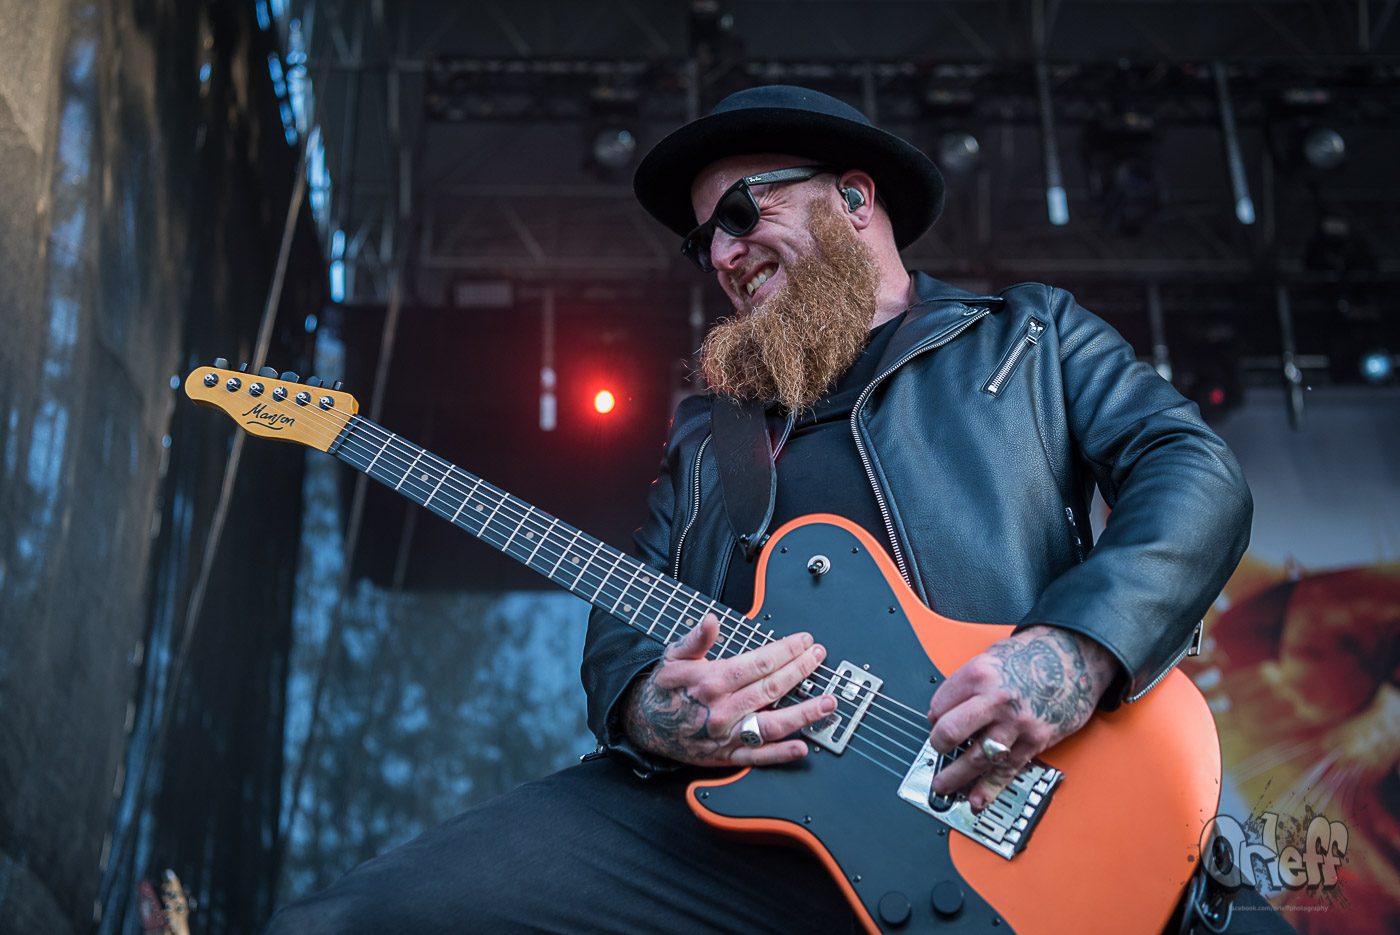 Skindred @ INmusic festival, 2019